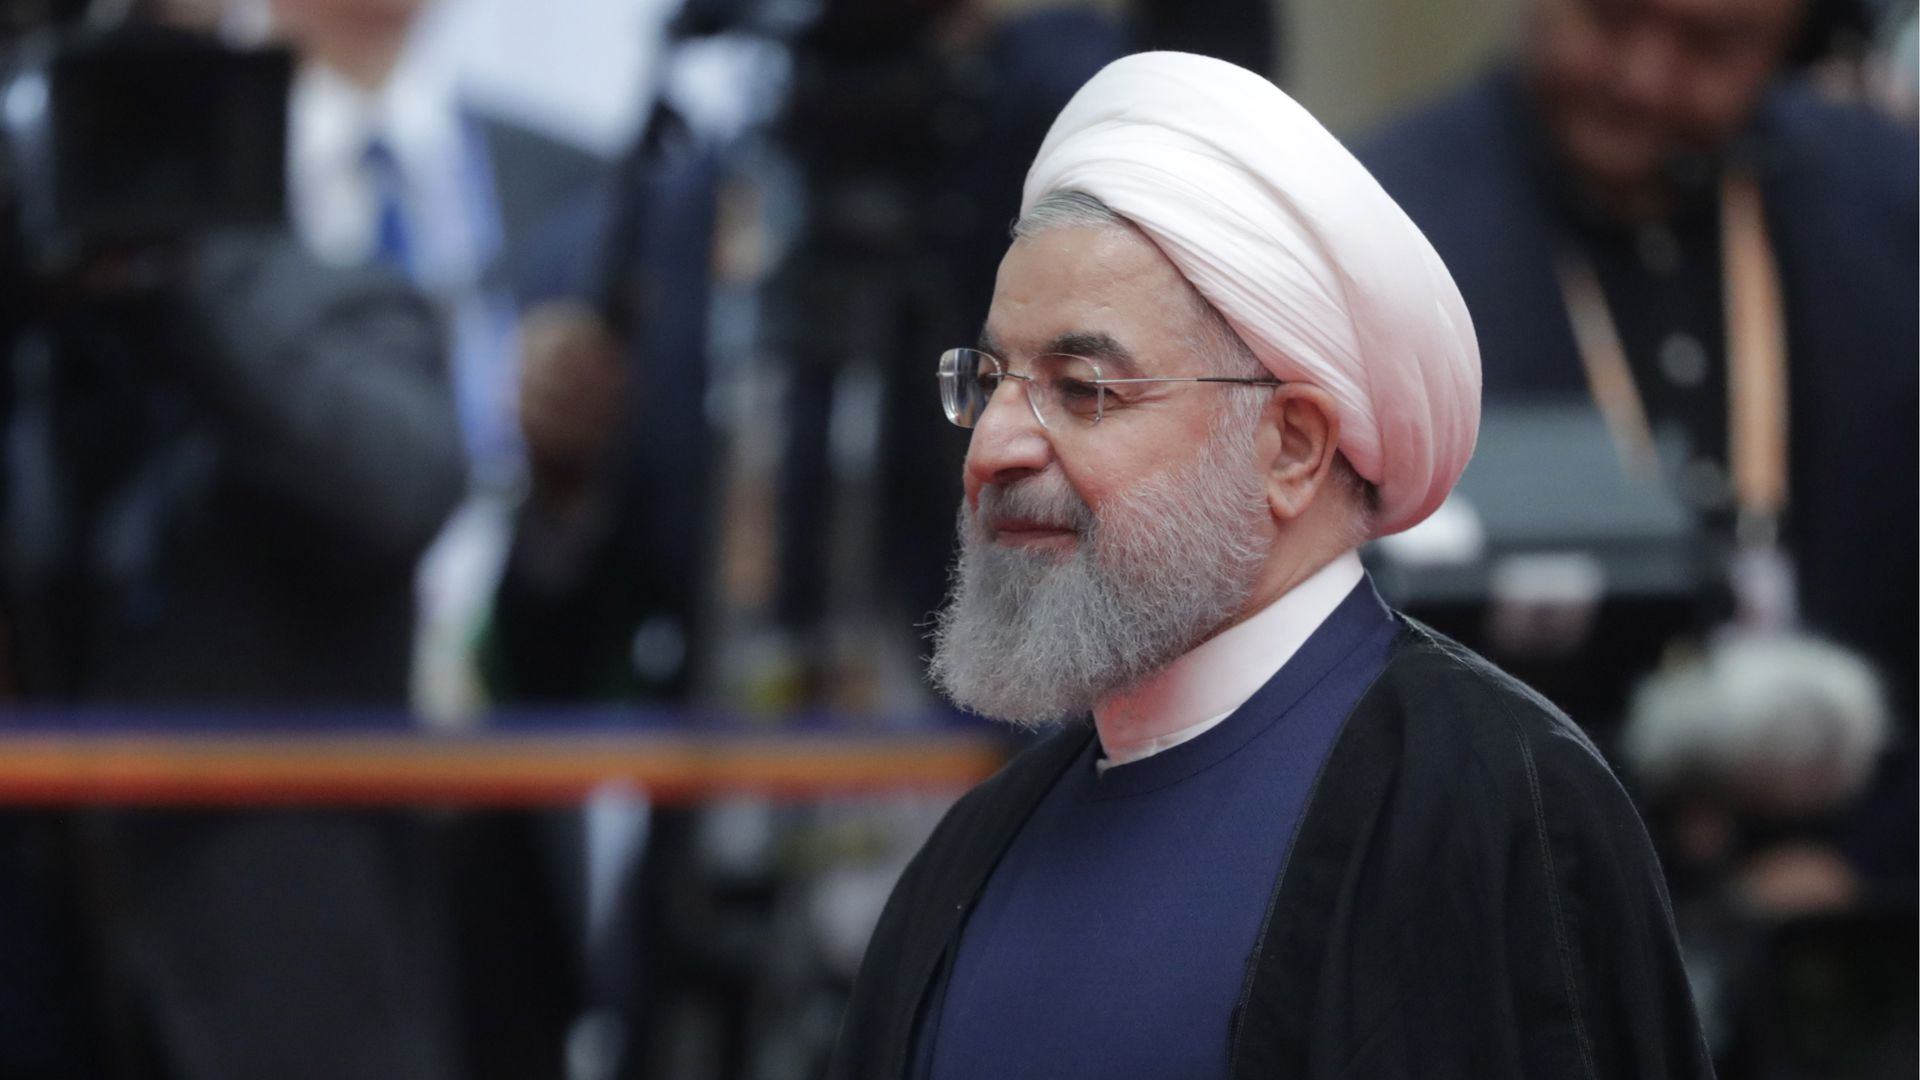 Iranian President Hassan Rouhani walks by photographers